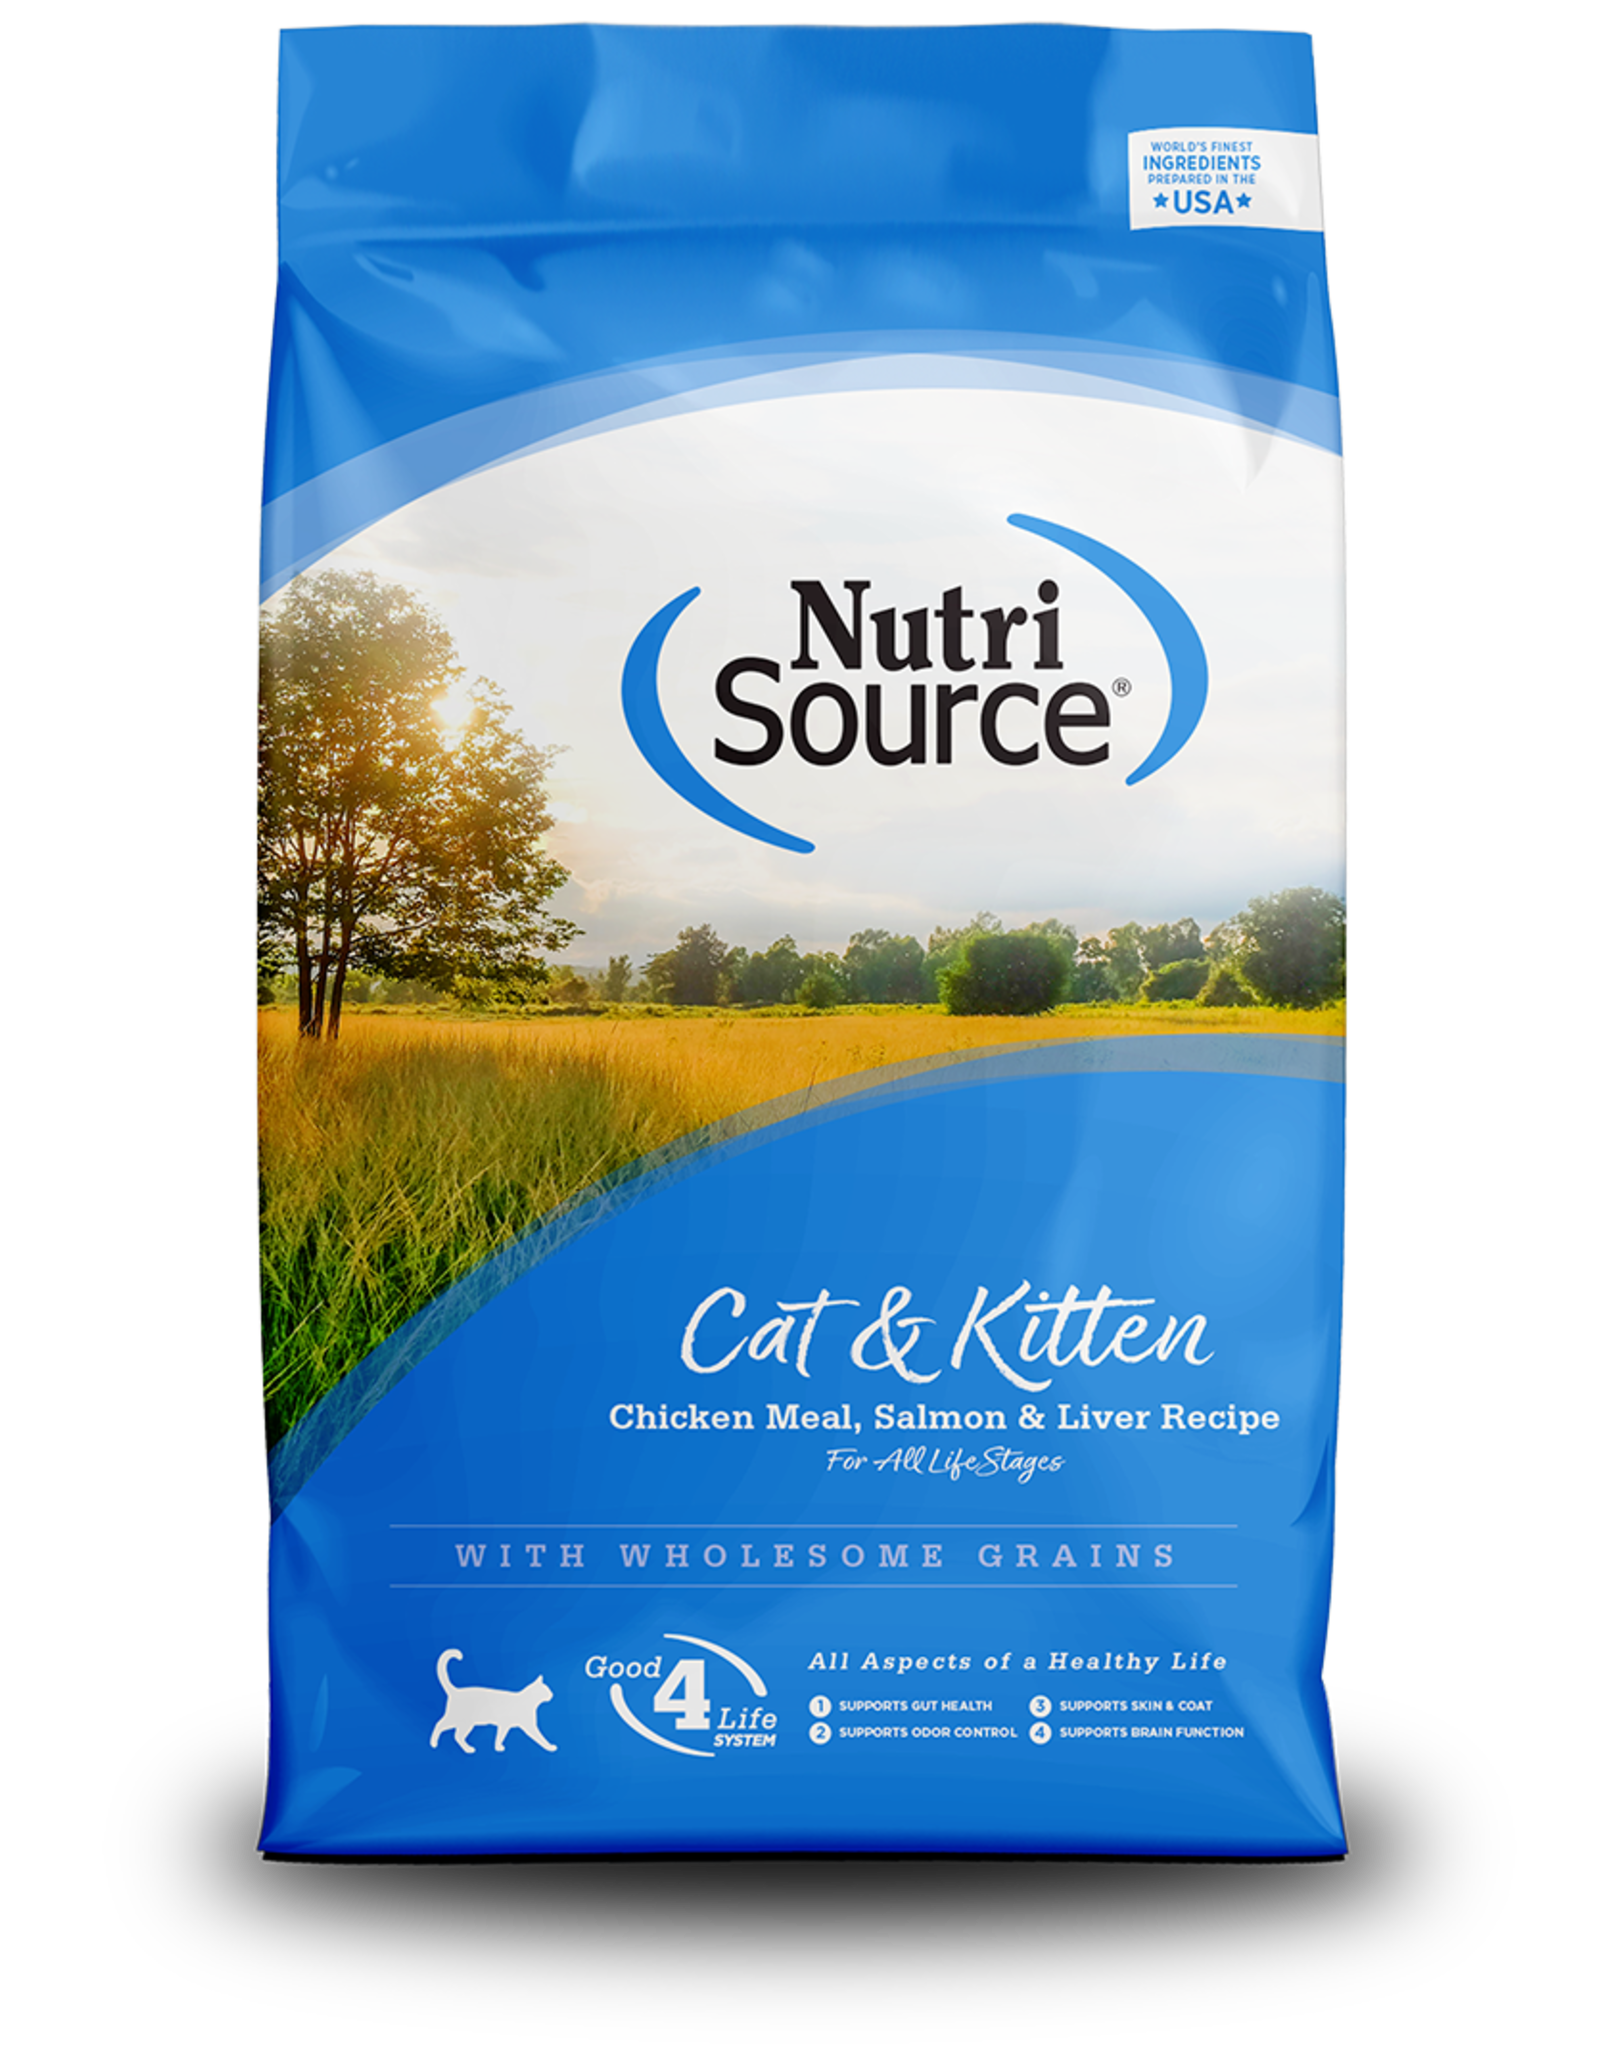 NutriSource NutriSource Dry Cat Food Cat & Kitten Chicken Meal, Salmon, & Liver Recipe